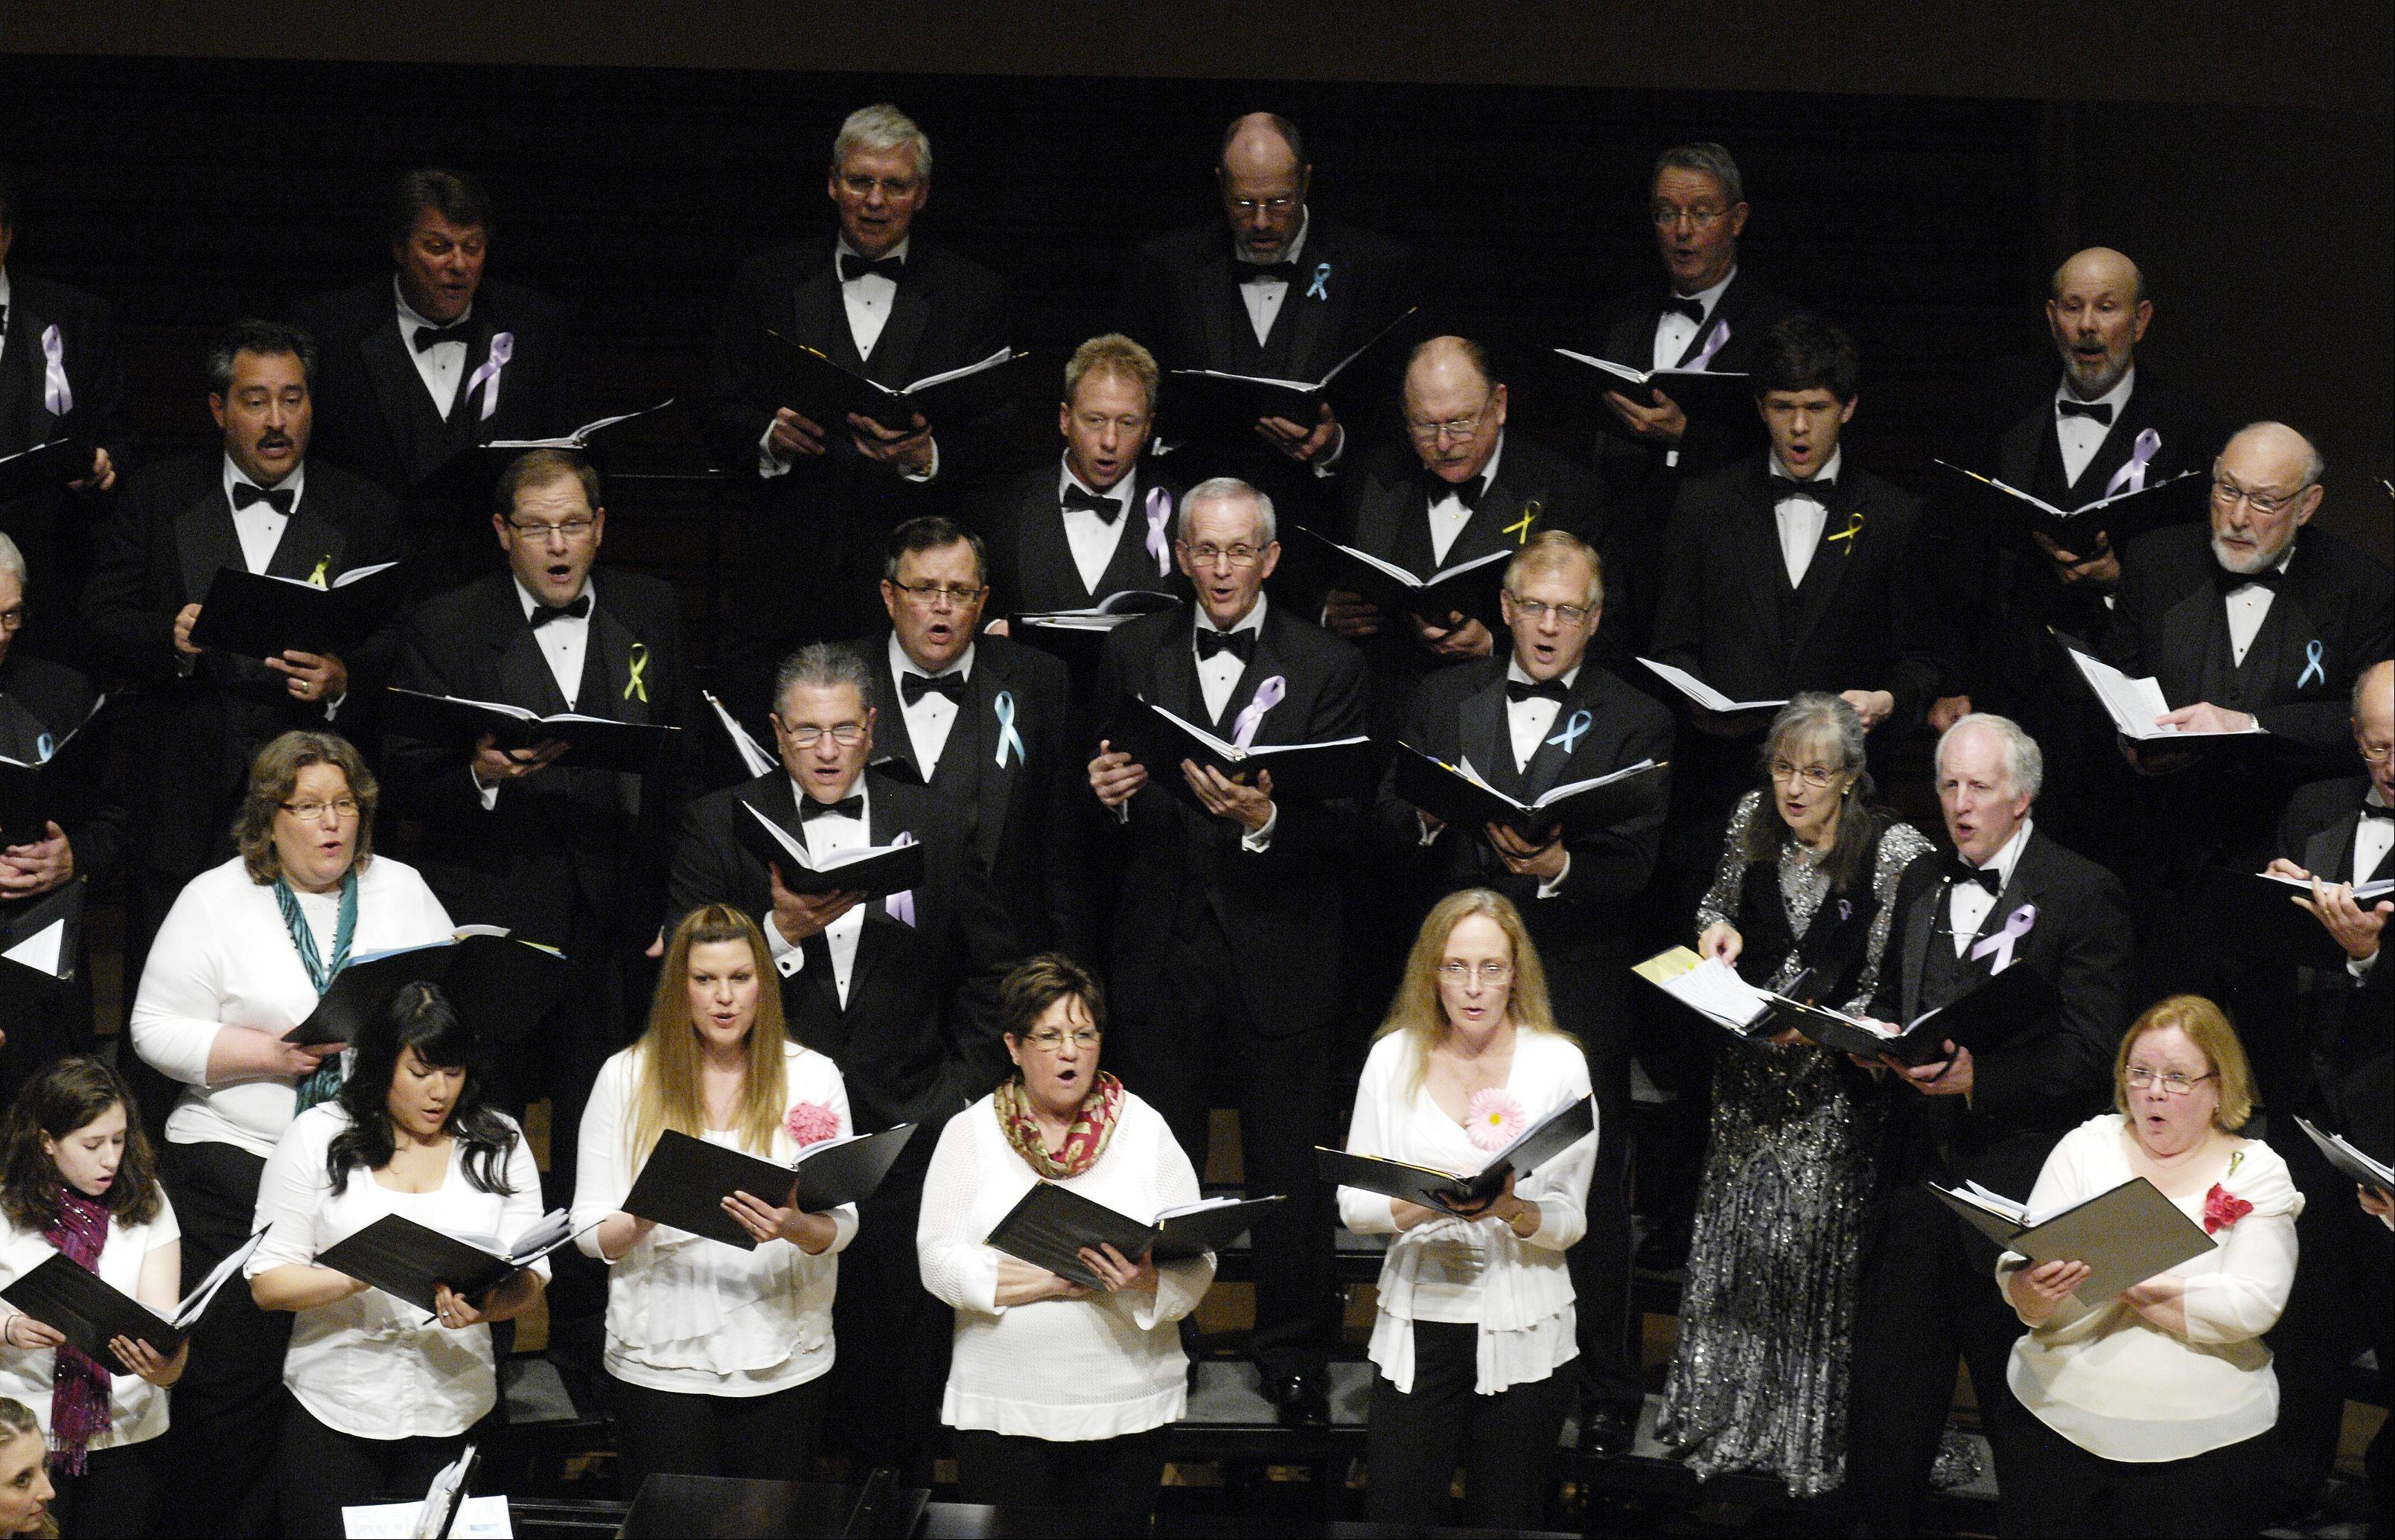 The Voices of Hope choir perform Sunday at the Wentz Concert Hall at North Central College in Naperville.